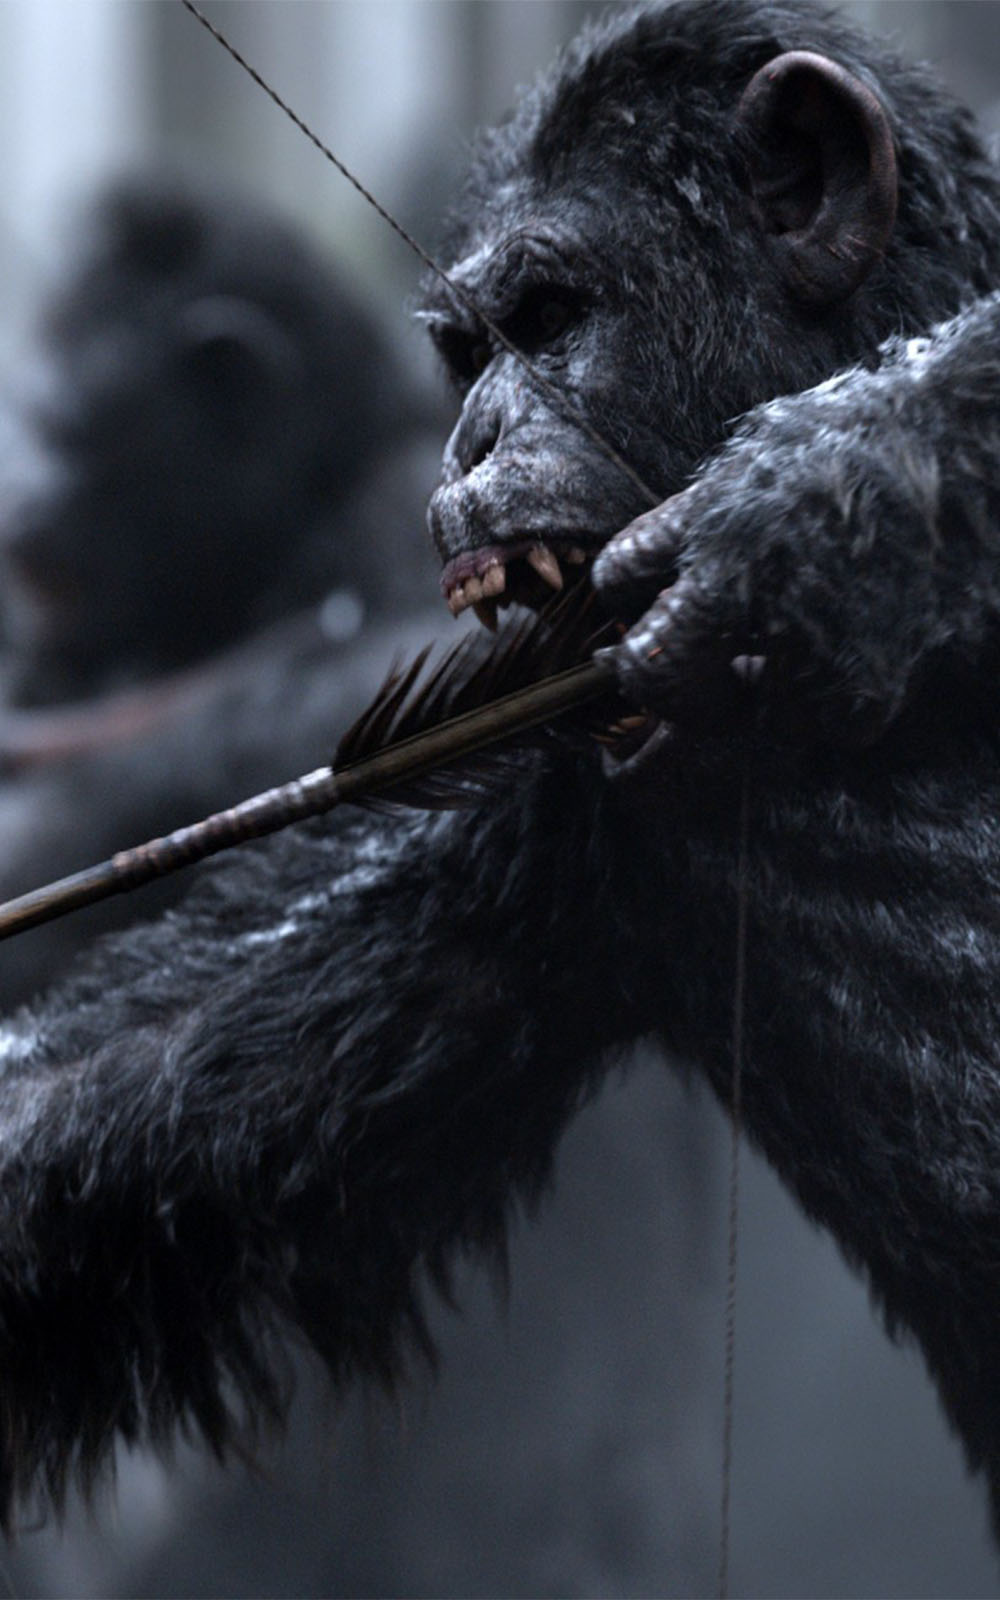 War For The Planet Of The Apes Wallpaper Posted By Michelle Thompson